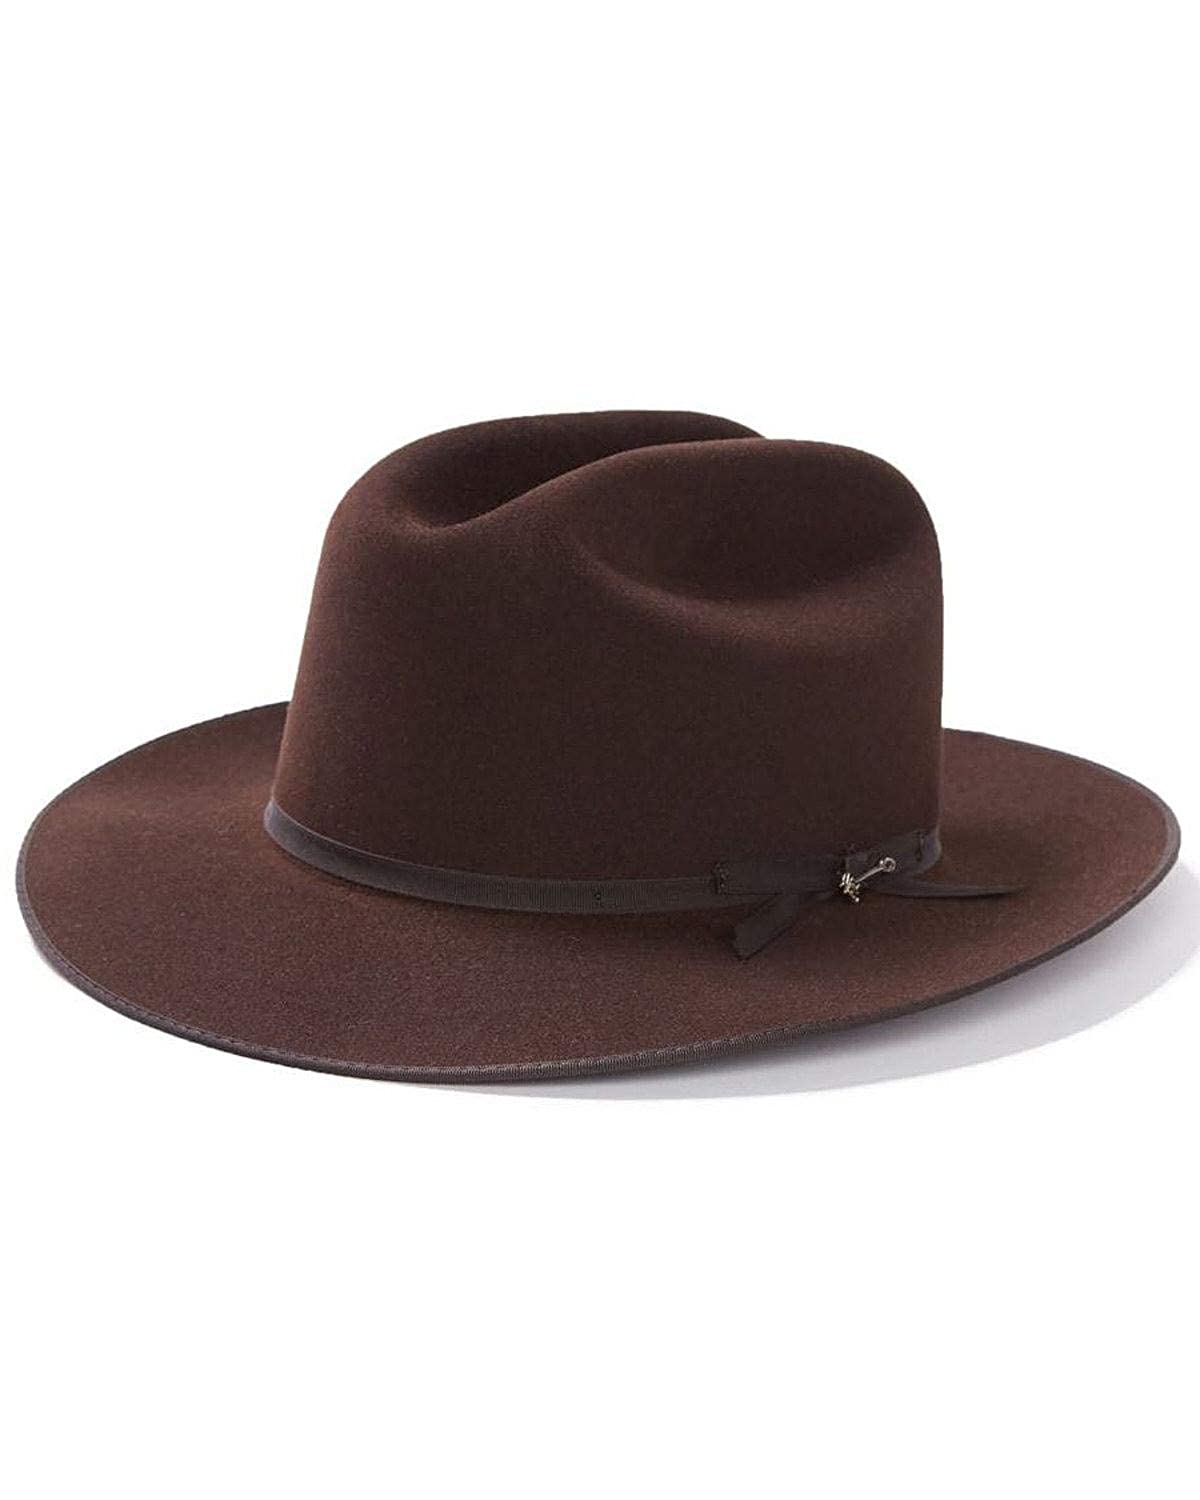 1d9c7f80d2202 Stetson Men s 6X Open Road Fur Felt Cowboy Hat at Amazon Men s Clothing  store